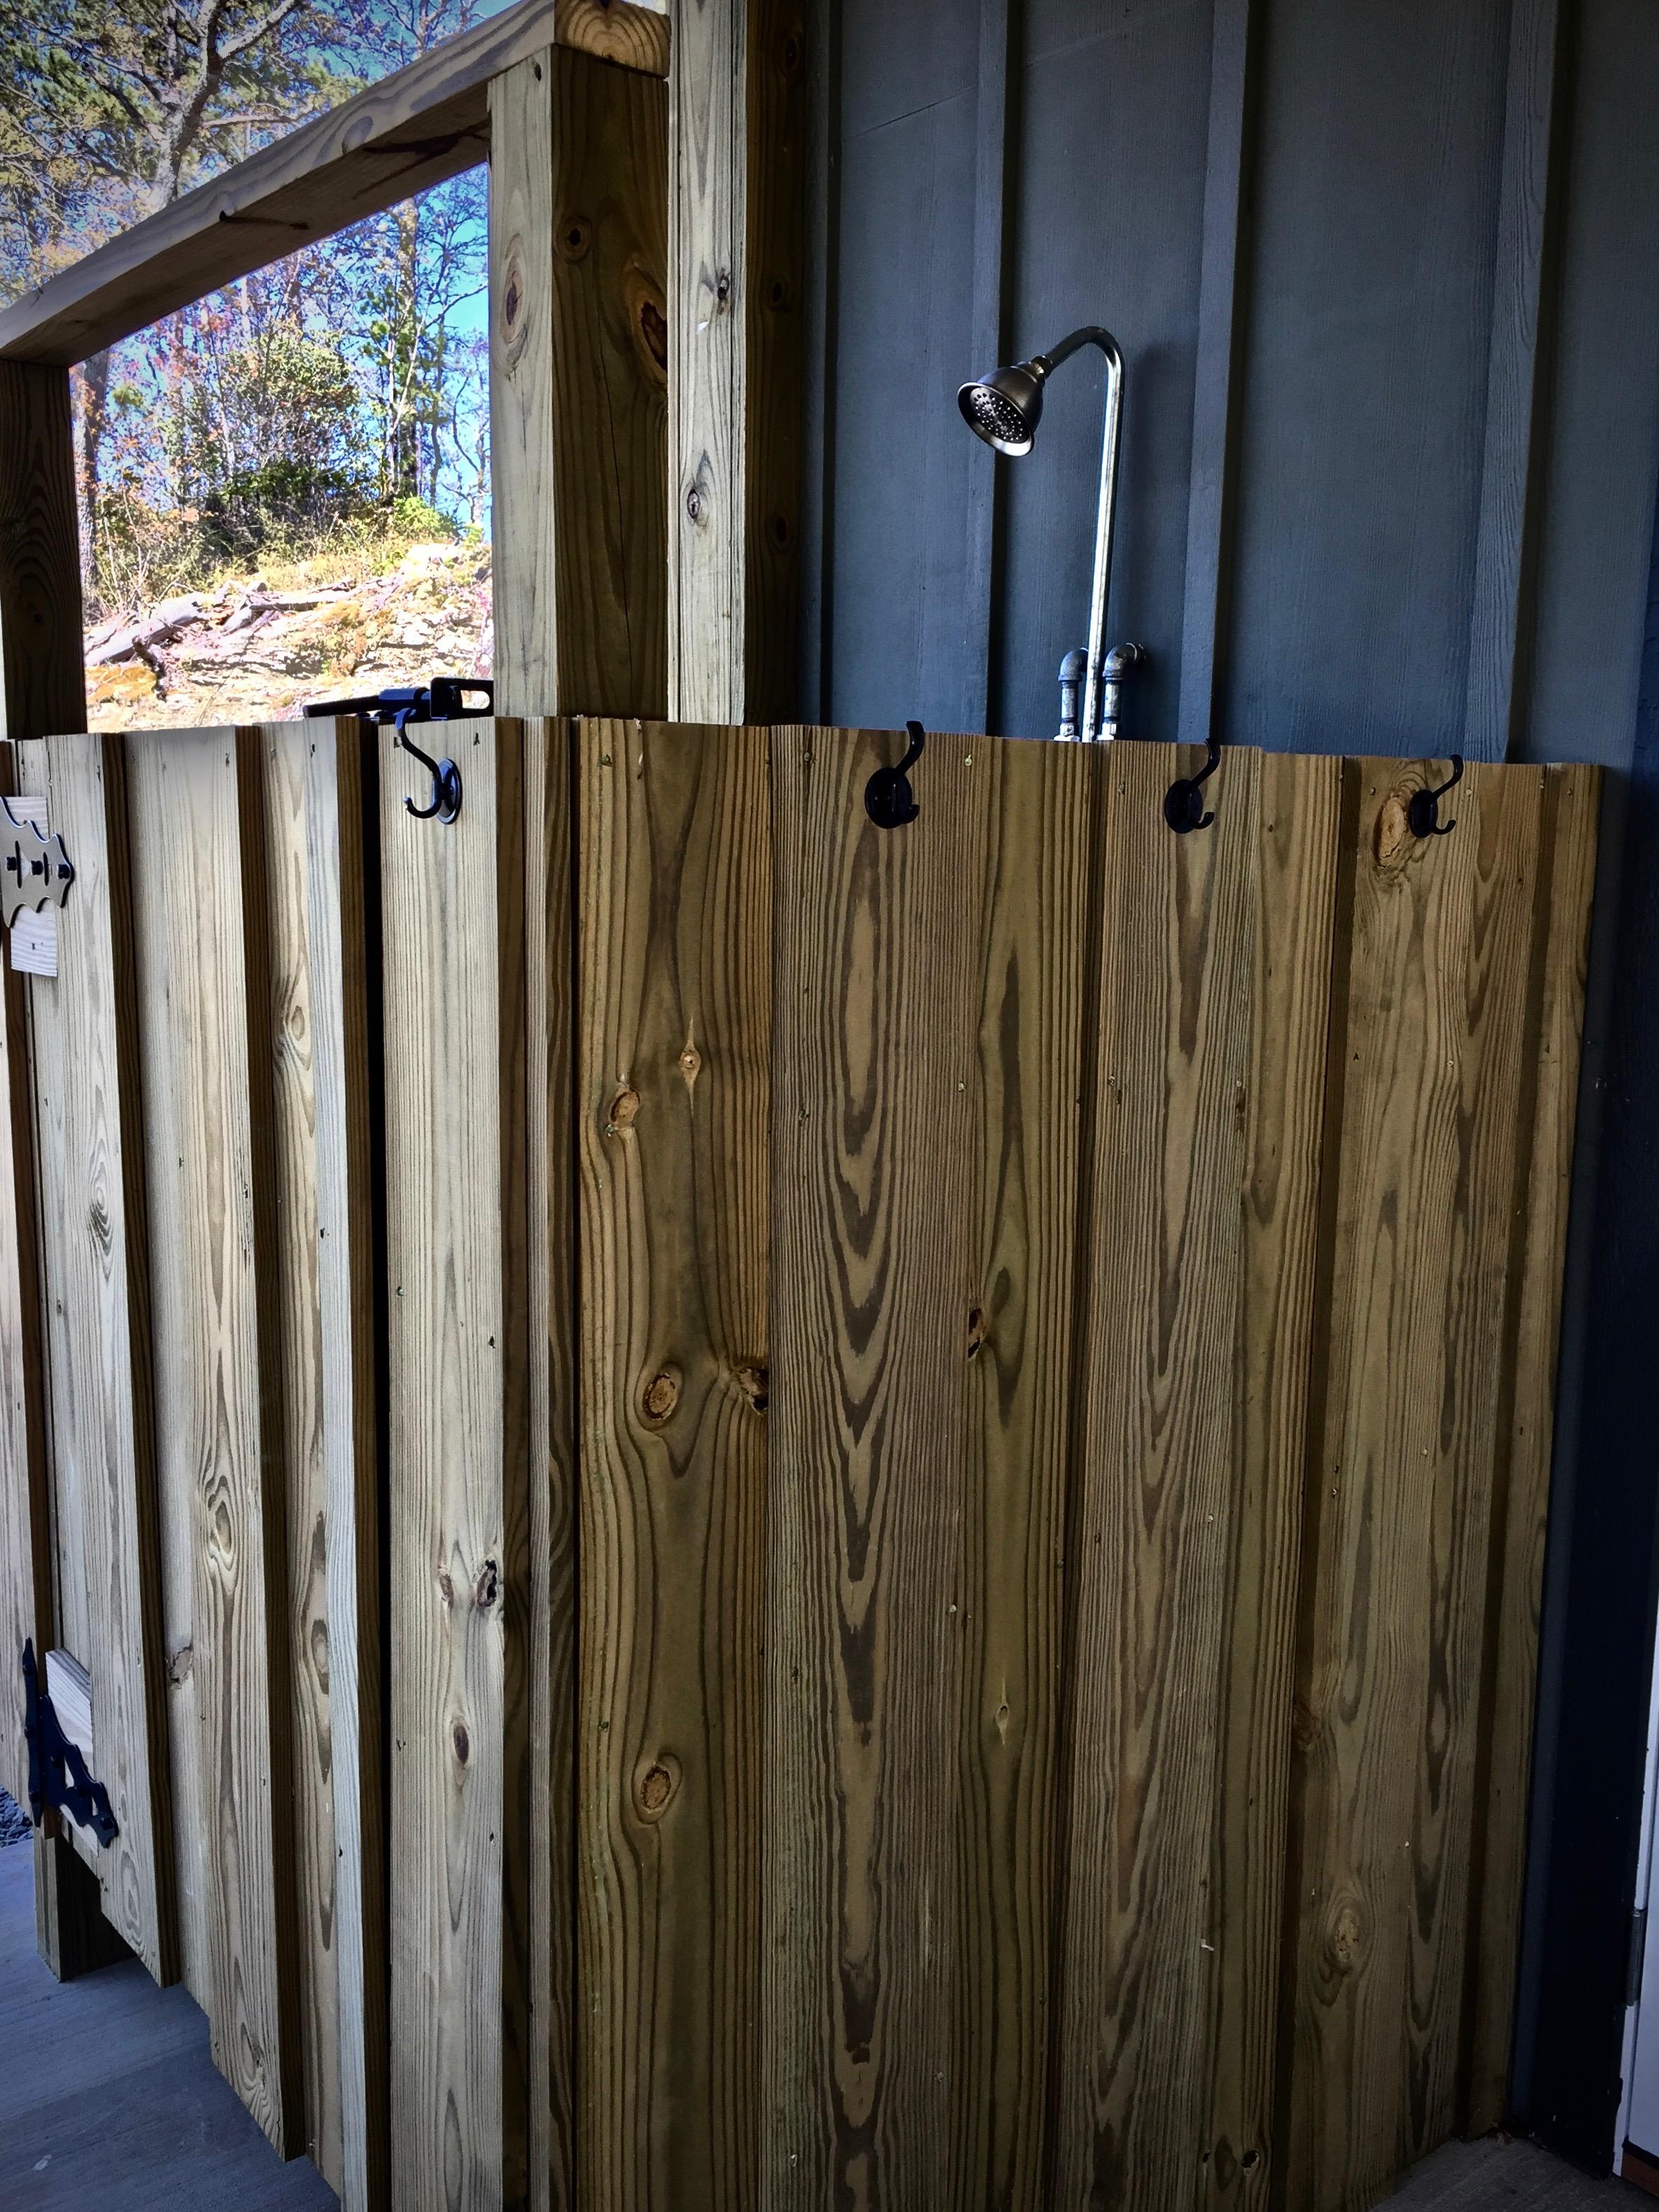 Outdoor Shower is conveniently located near the Hot Tub